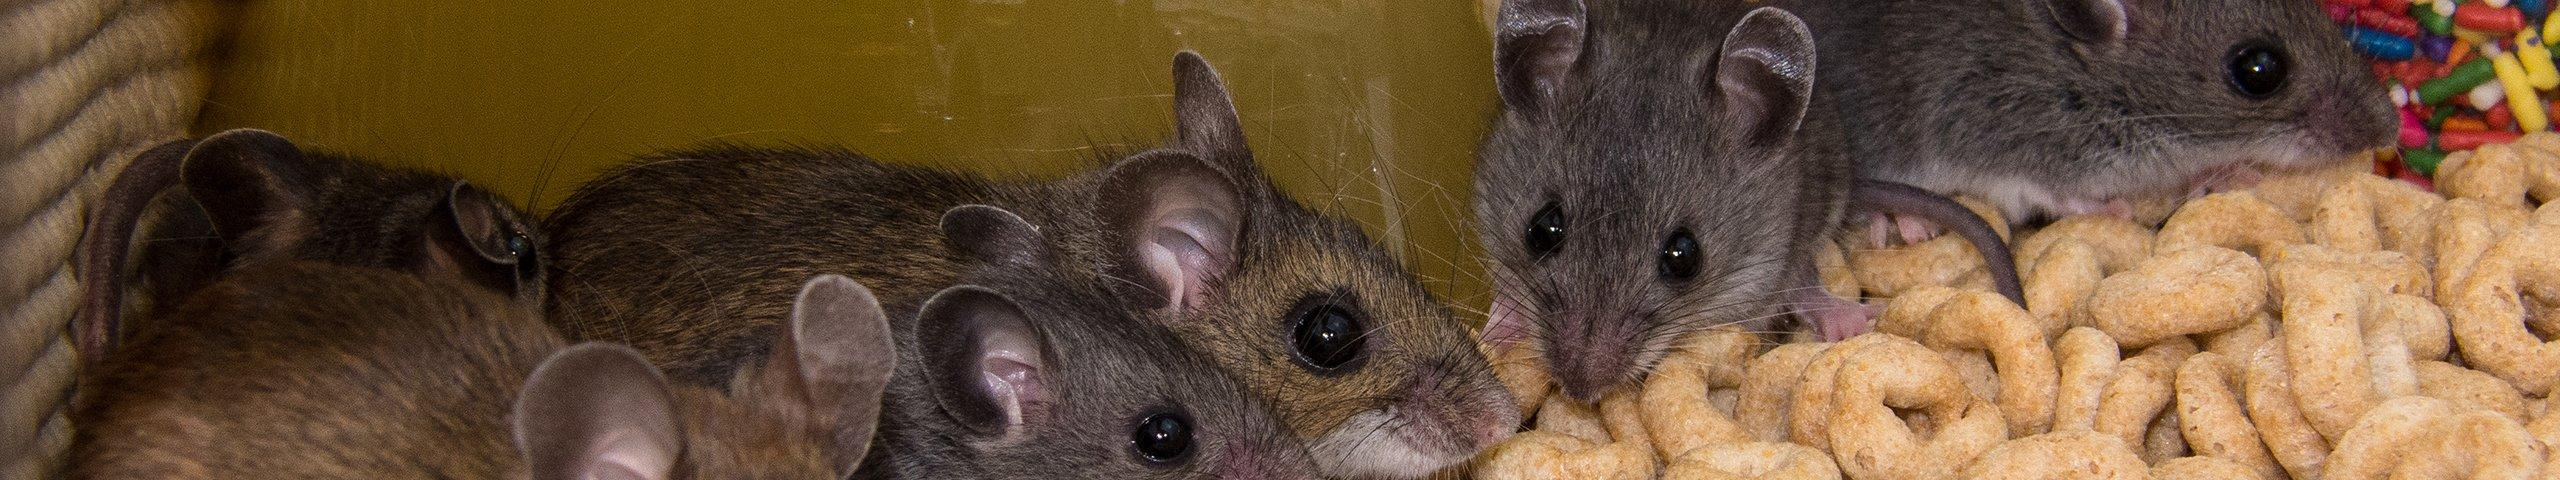 house mice in a pantry cabinet